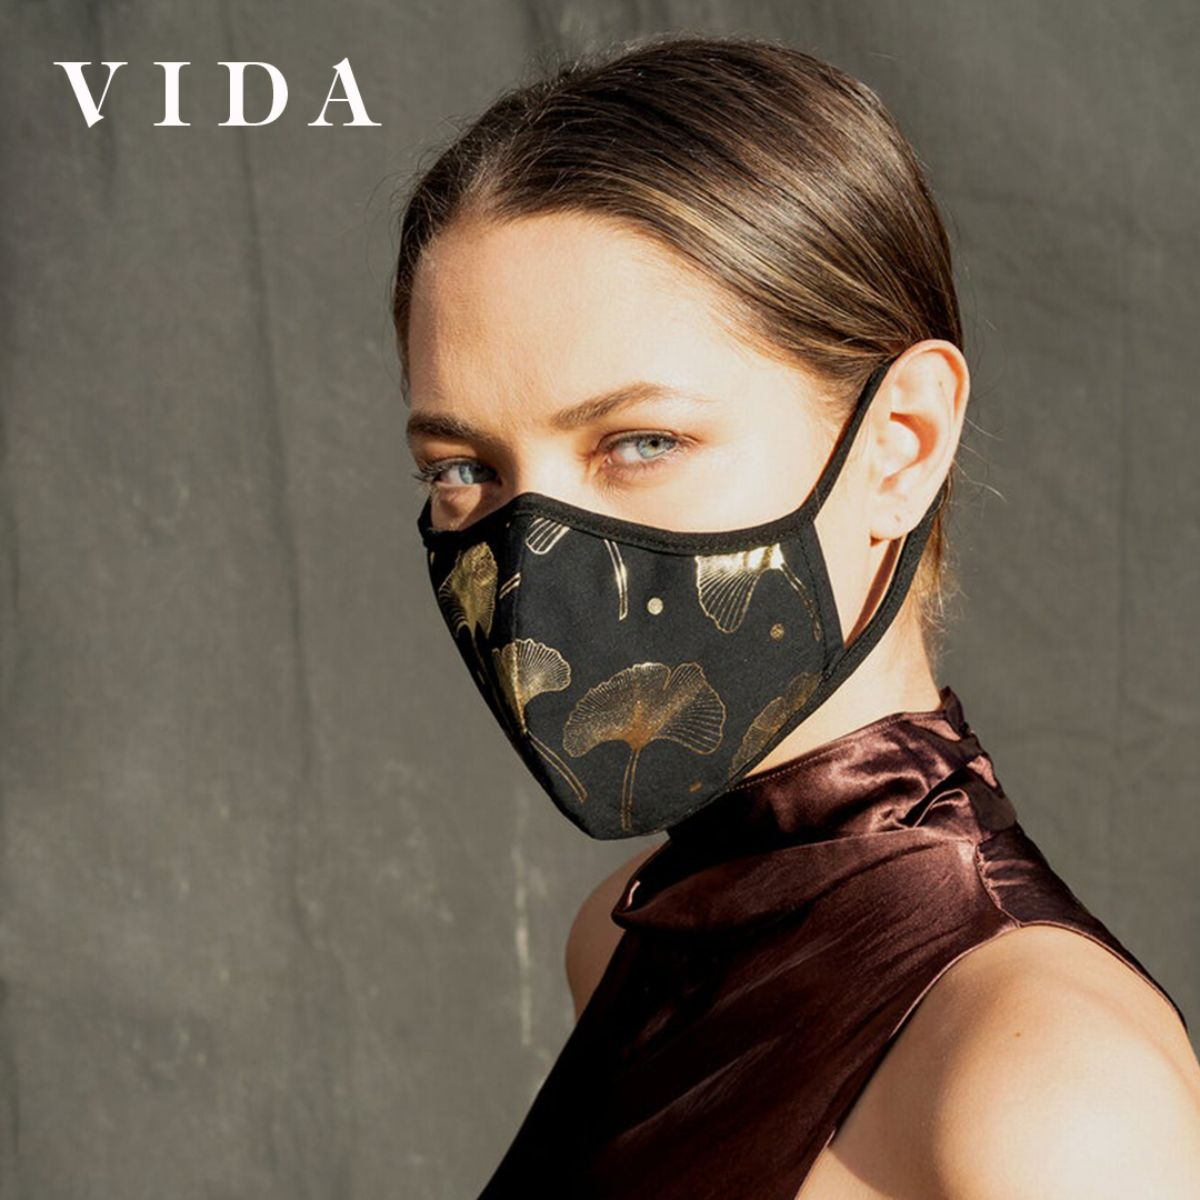 VIDA Holiday Mask in Gold & Silver Foil Print